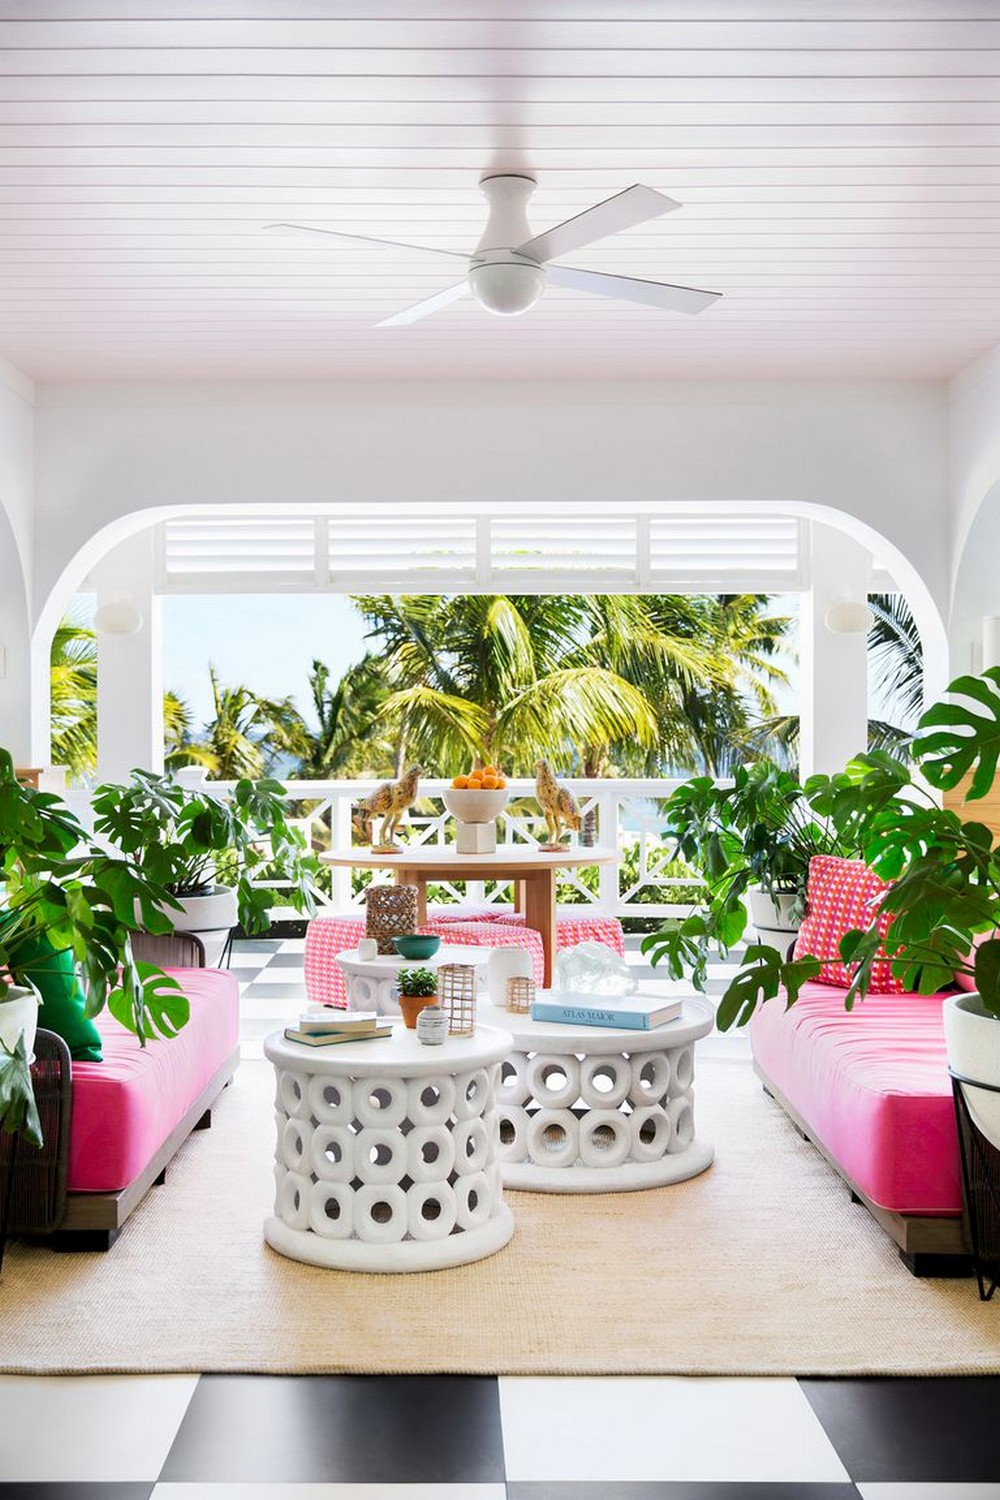 House Beautiful Shows The Trendiest Hospitality Project In The Bahamas house beautiful House Beautiful Shows The Trendiest Hospitality Project In The Bahamas House Beautiful Shows The Trendiest Hospitality Project In The Bahamas 2